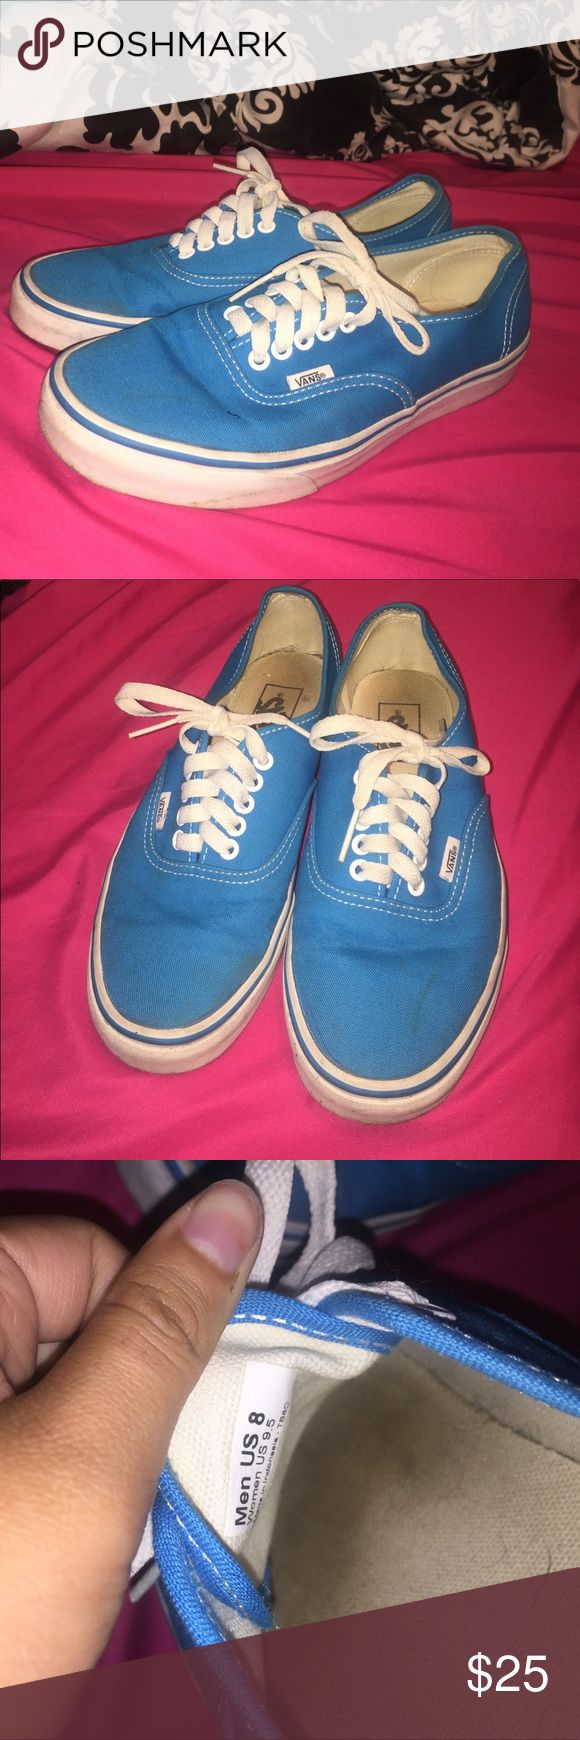 Light blue Vans Mens size 8, Womens size 9.5.  Worn a couple times, they are still in great condition. Vans Shoes Sneakers